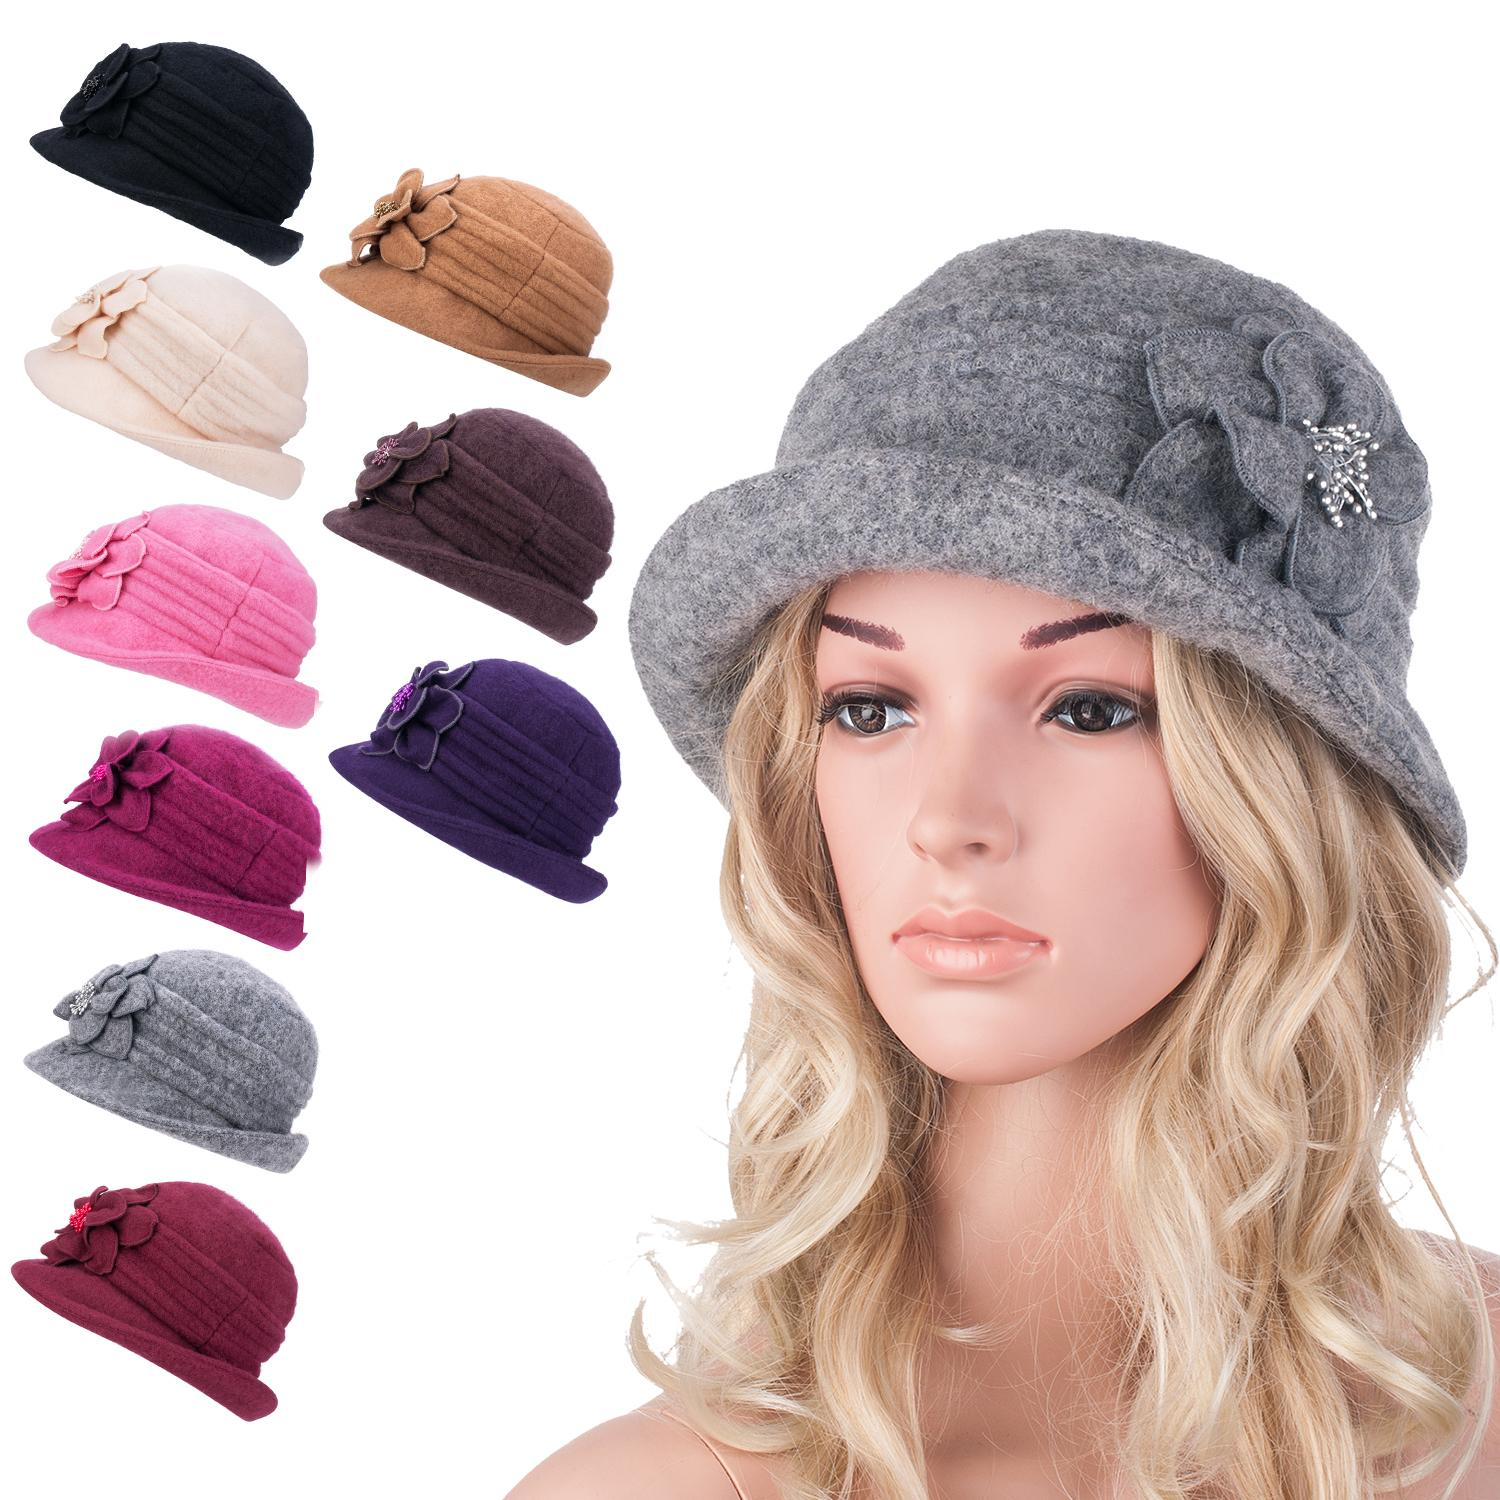 a4a8f6db2ba2f2 2019 Womens Gatsby Style 1920s Flapper Girl Winter Wool Cap Beret Beanie  Cloche Bucket Formal Hat A299 From Spowwow, $9.55 | DHgate.Com